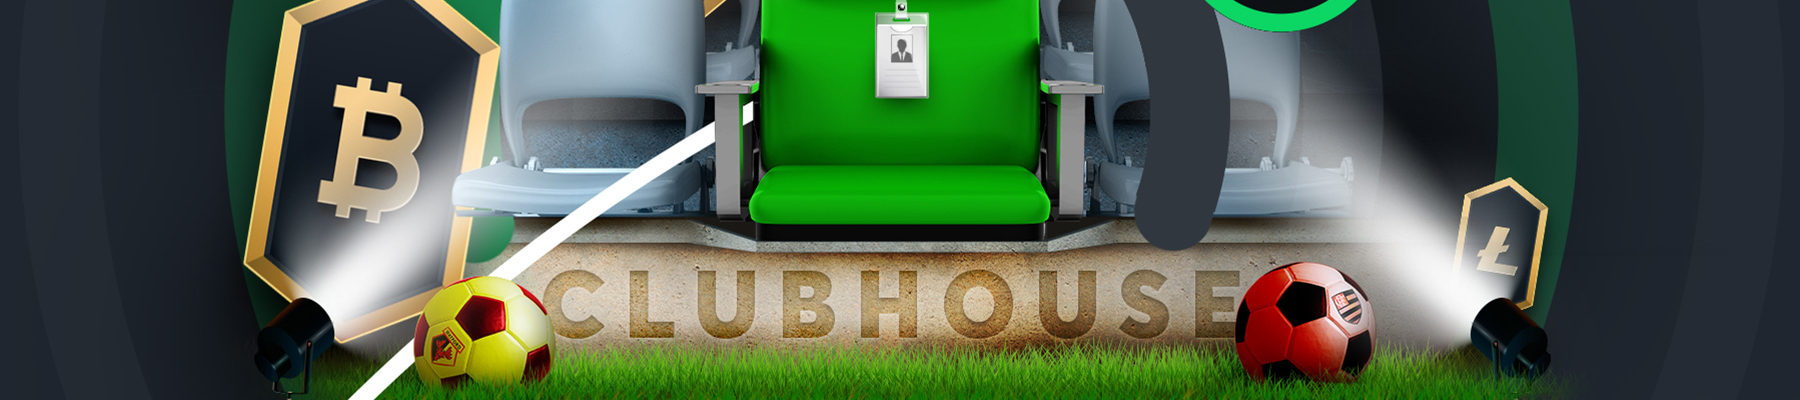 Clubhouse Banner Games